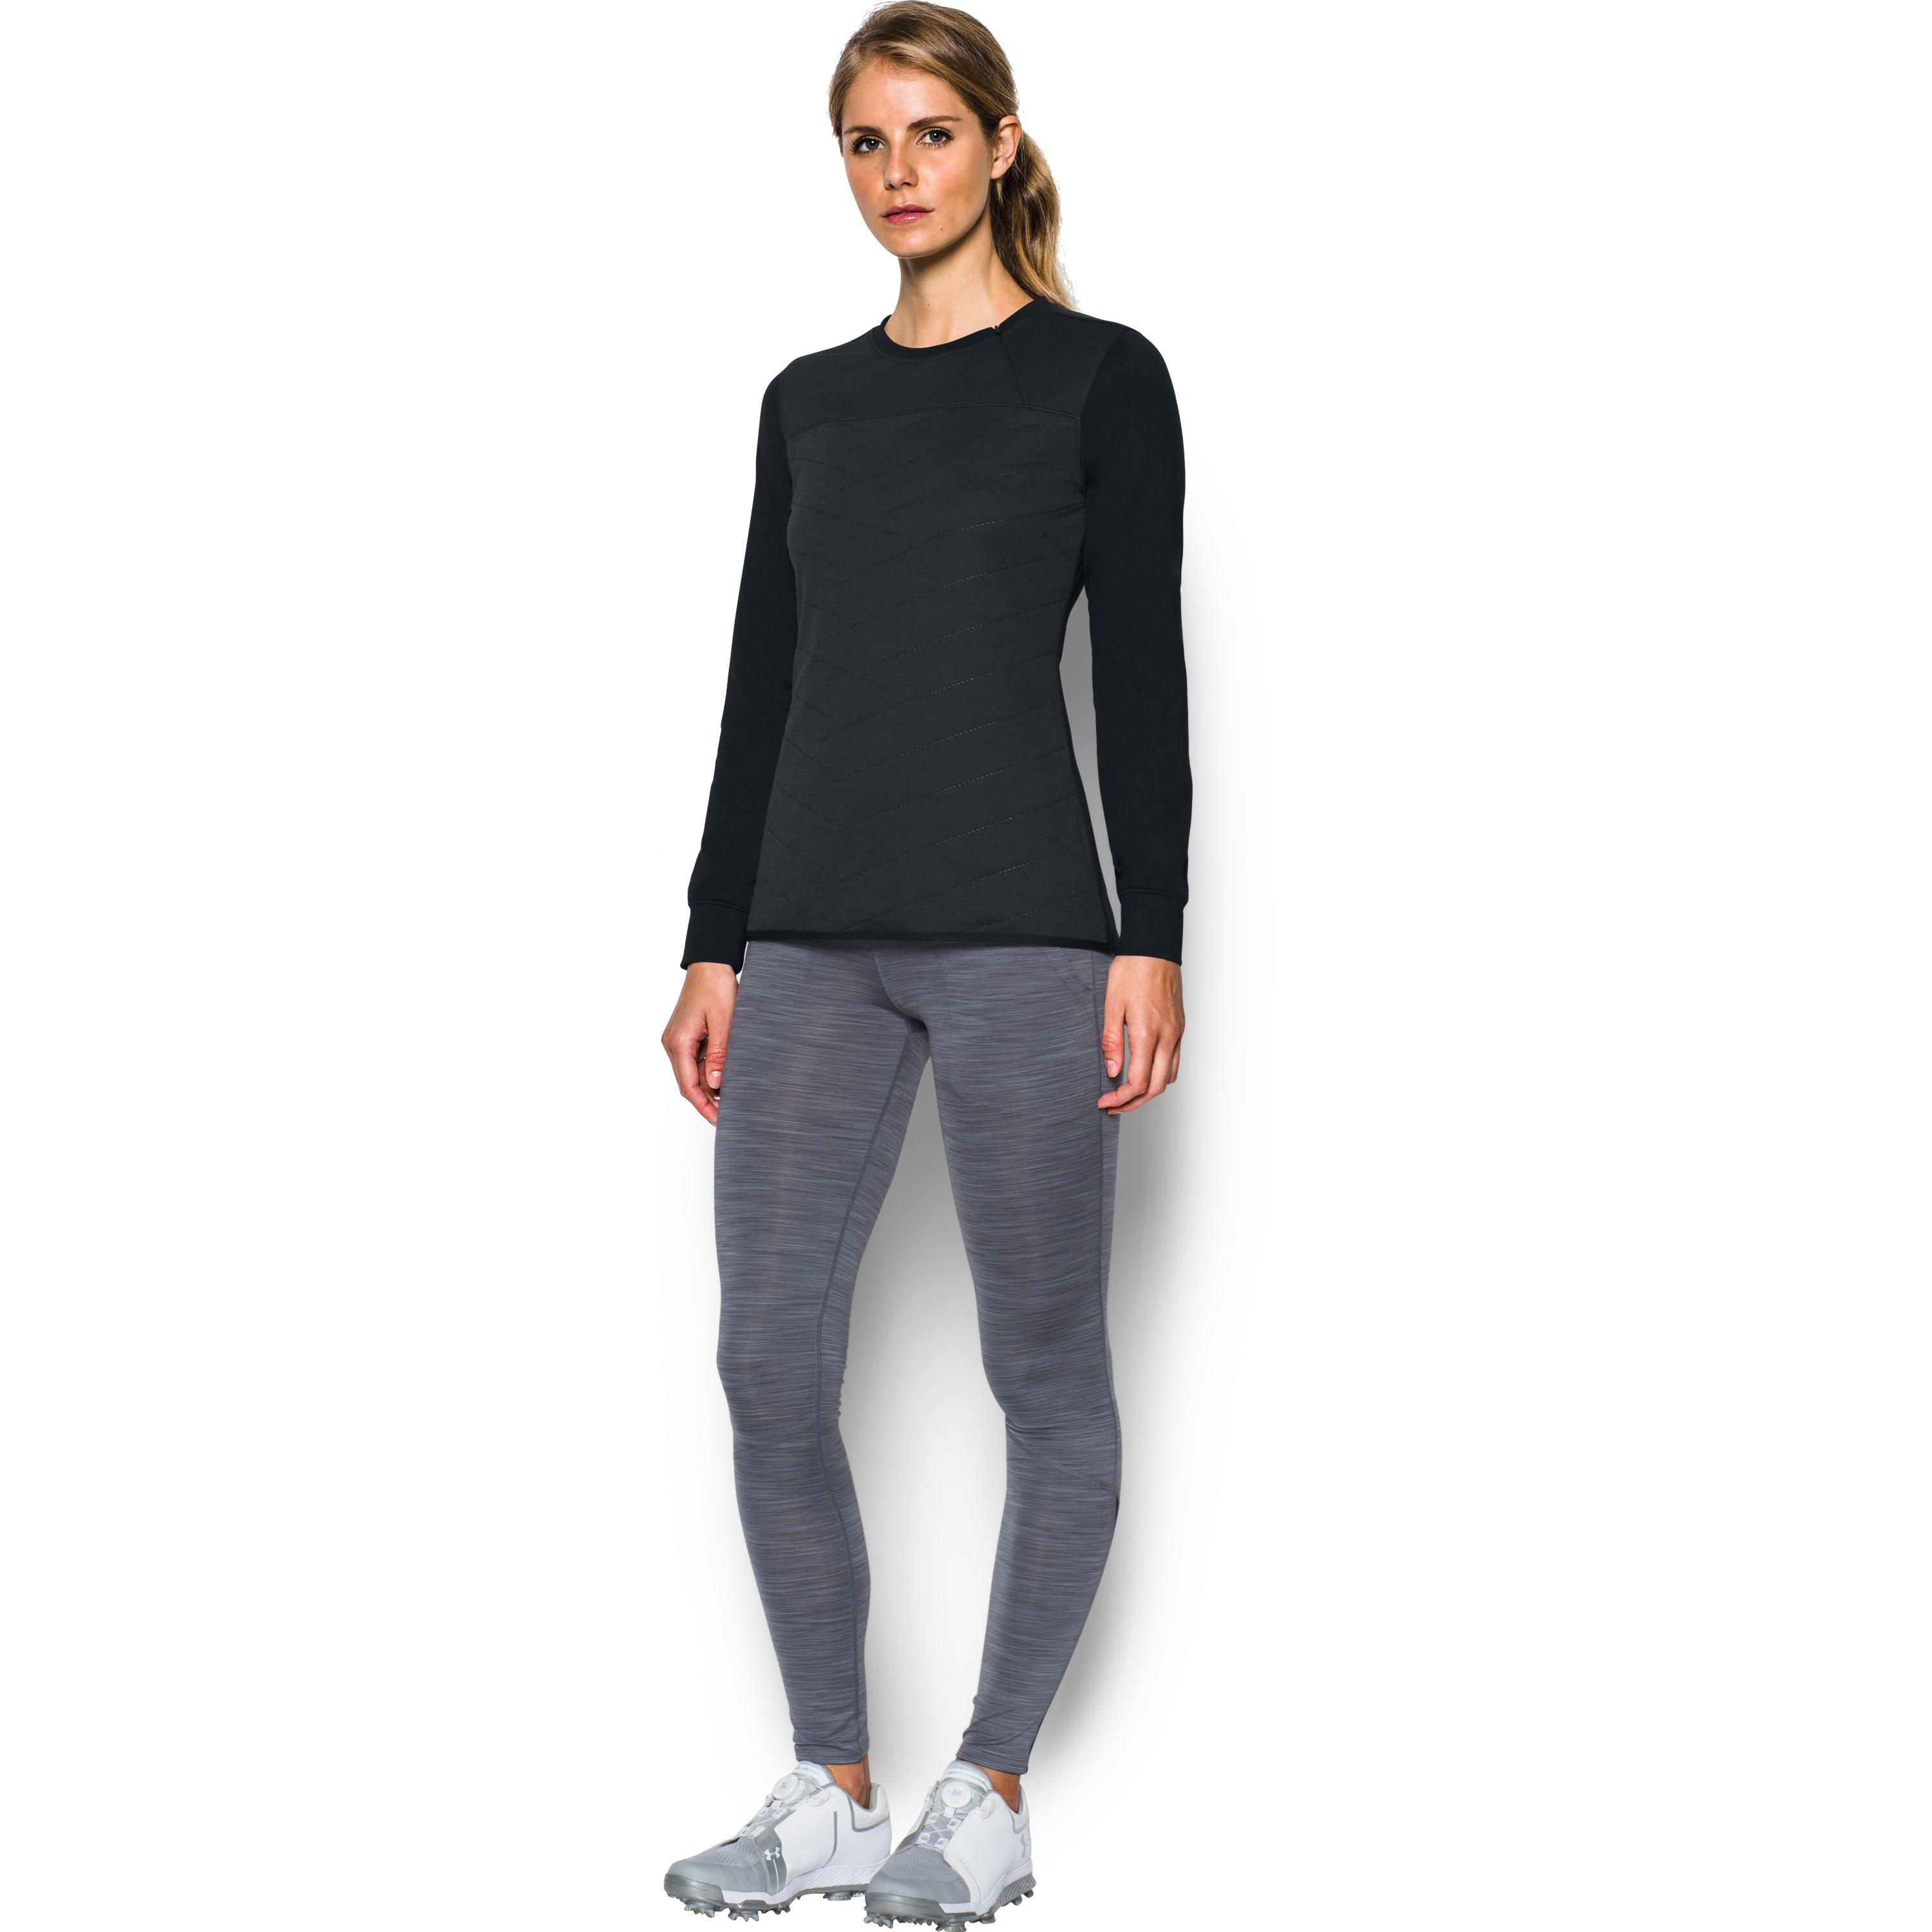 e0ebe3a88 Under Armour Women's Coldgear® Reactor 1⁄2 Zip Hybrid Long Sleeve ...